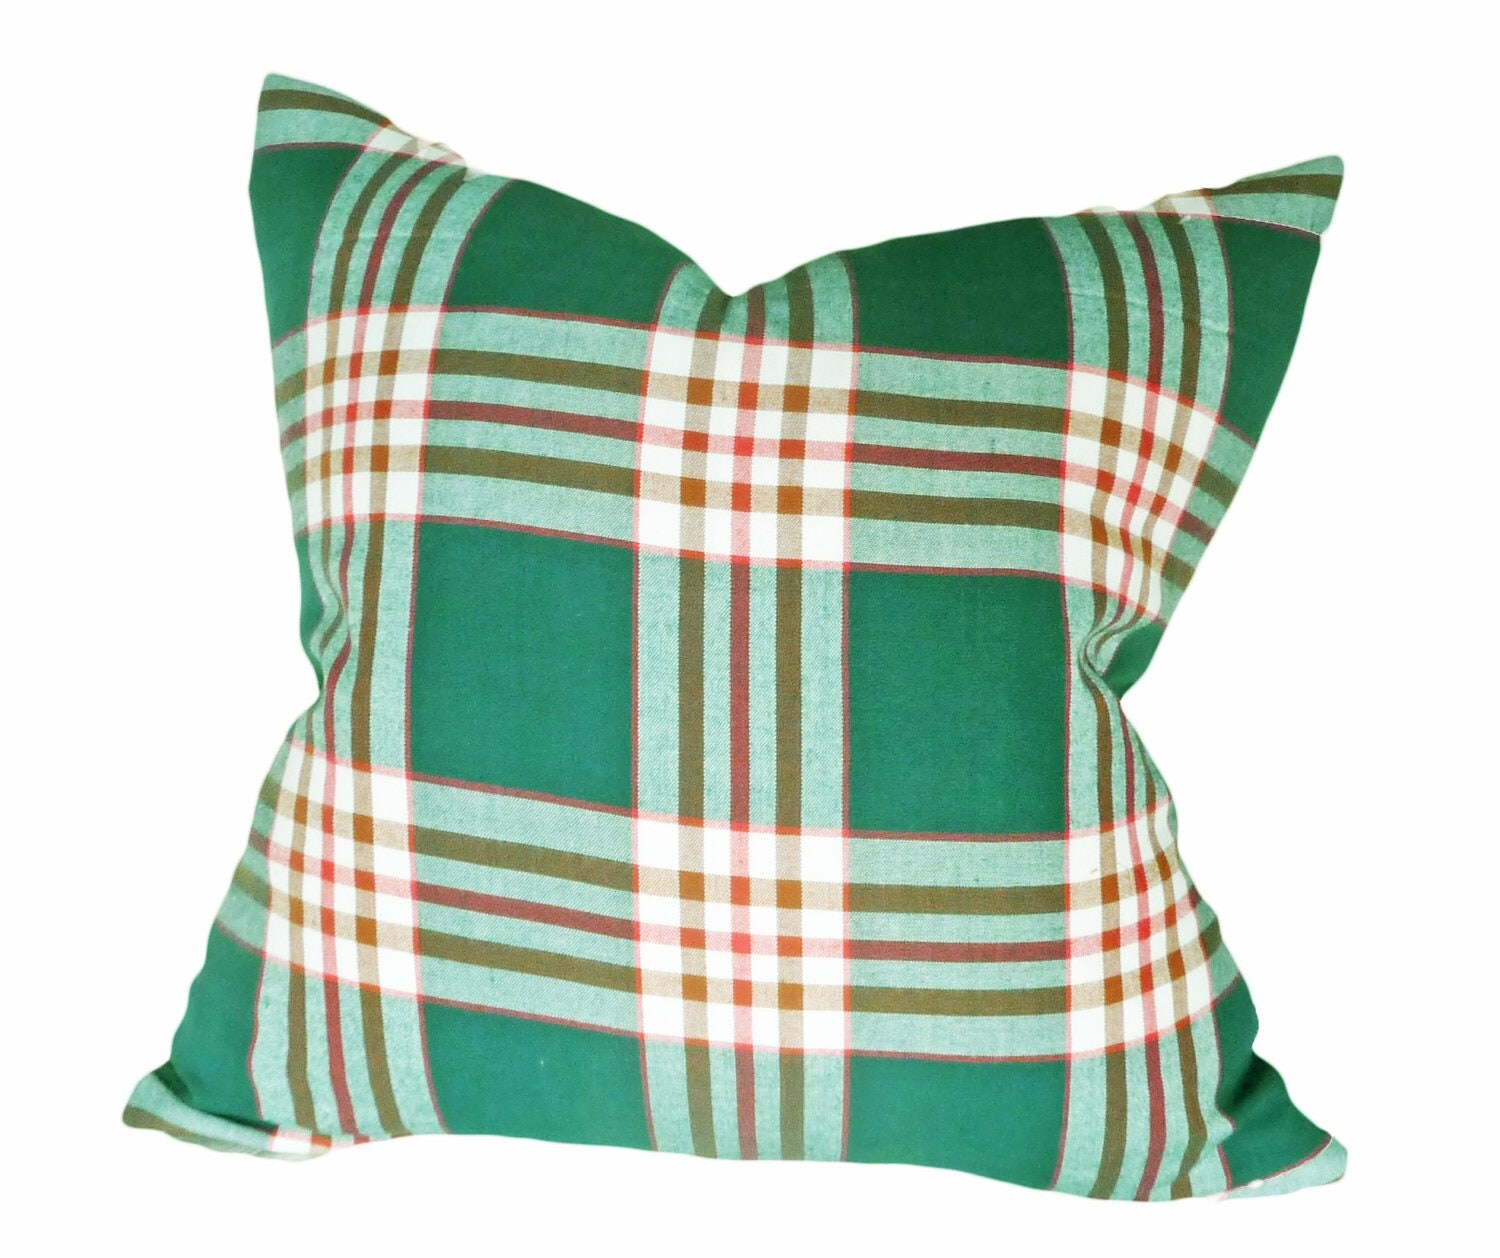 Decorative Plaid Pillows : Green Plaid Throw Pillows Decorative Throw by PillowThrowDecor